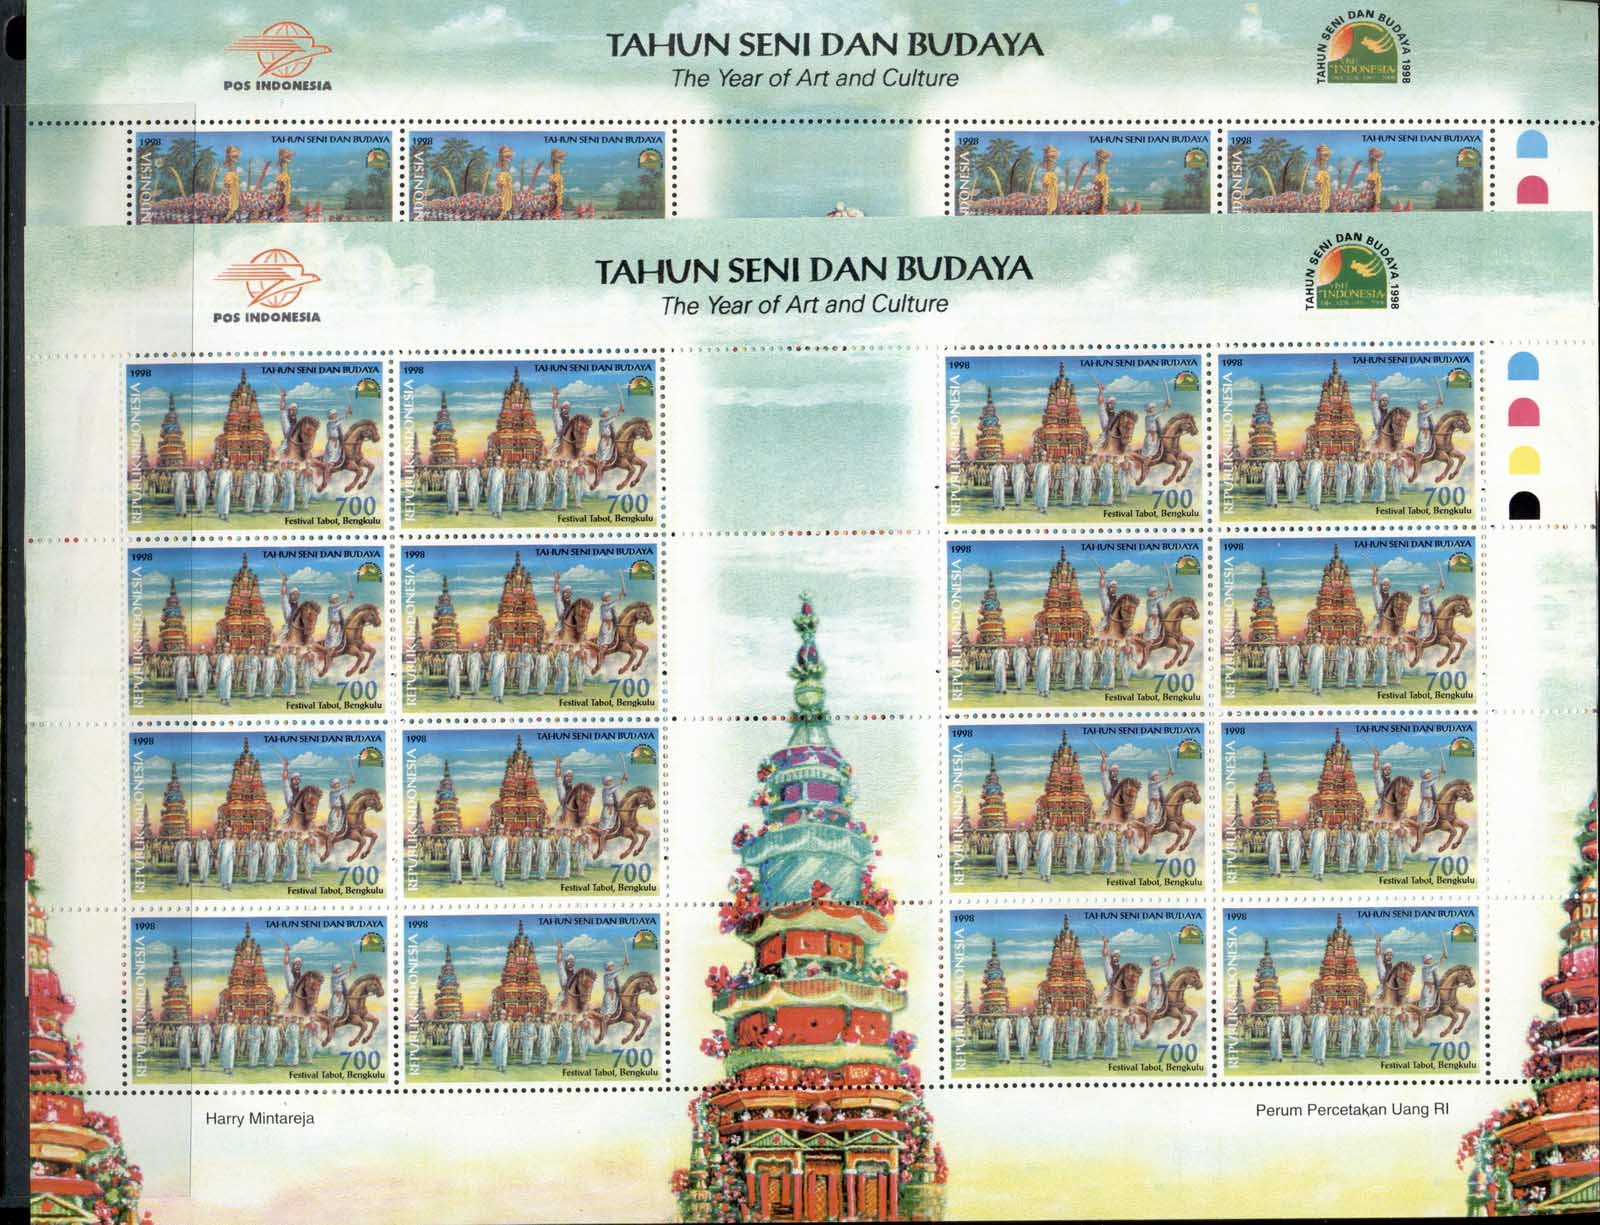 Indonesia 1998 Year of Art & Culture (folded) 2x sheets MUH